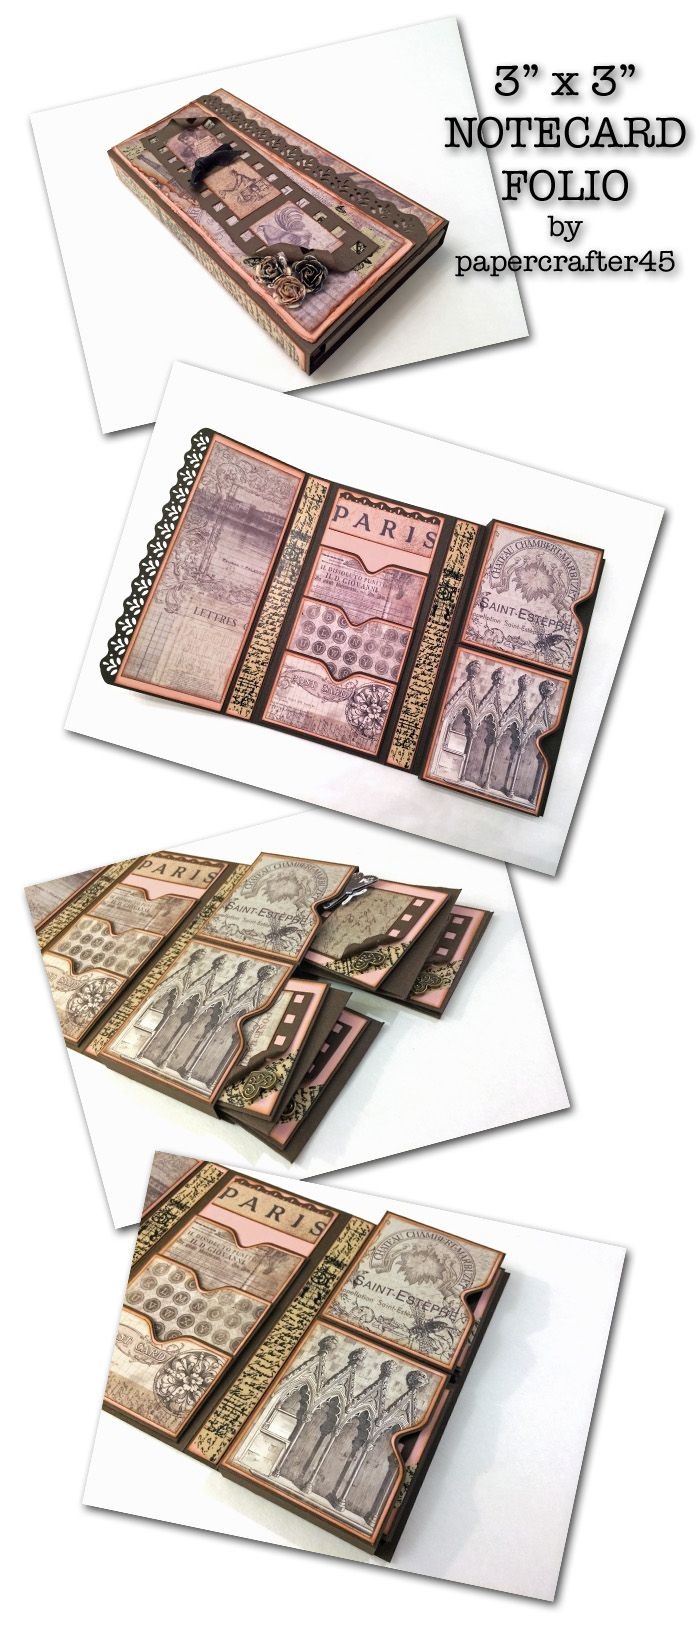 """This Notecard Folio is a lovely way to present your 3"""" x 3"""" handcrafted notecards! Easy to assemble & fun to decorate! YouTube tutorial by papercrafter45."""